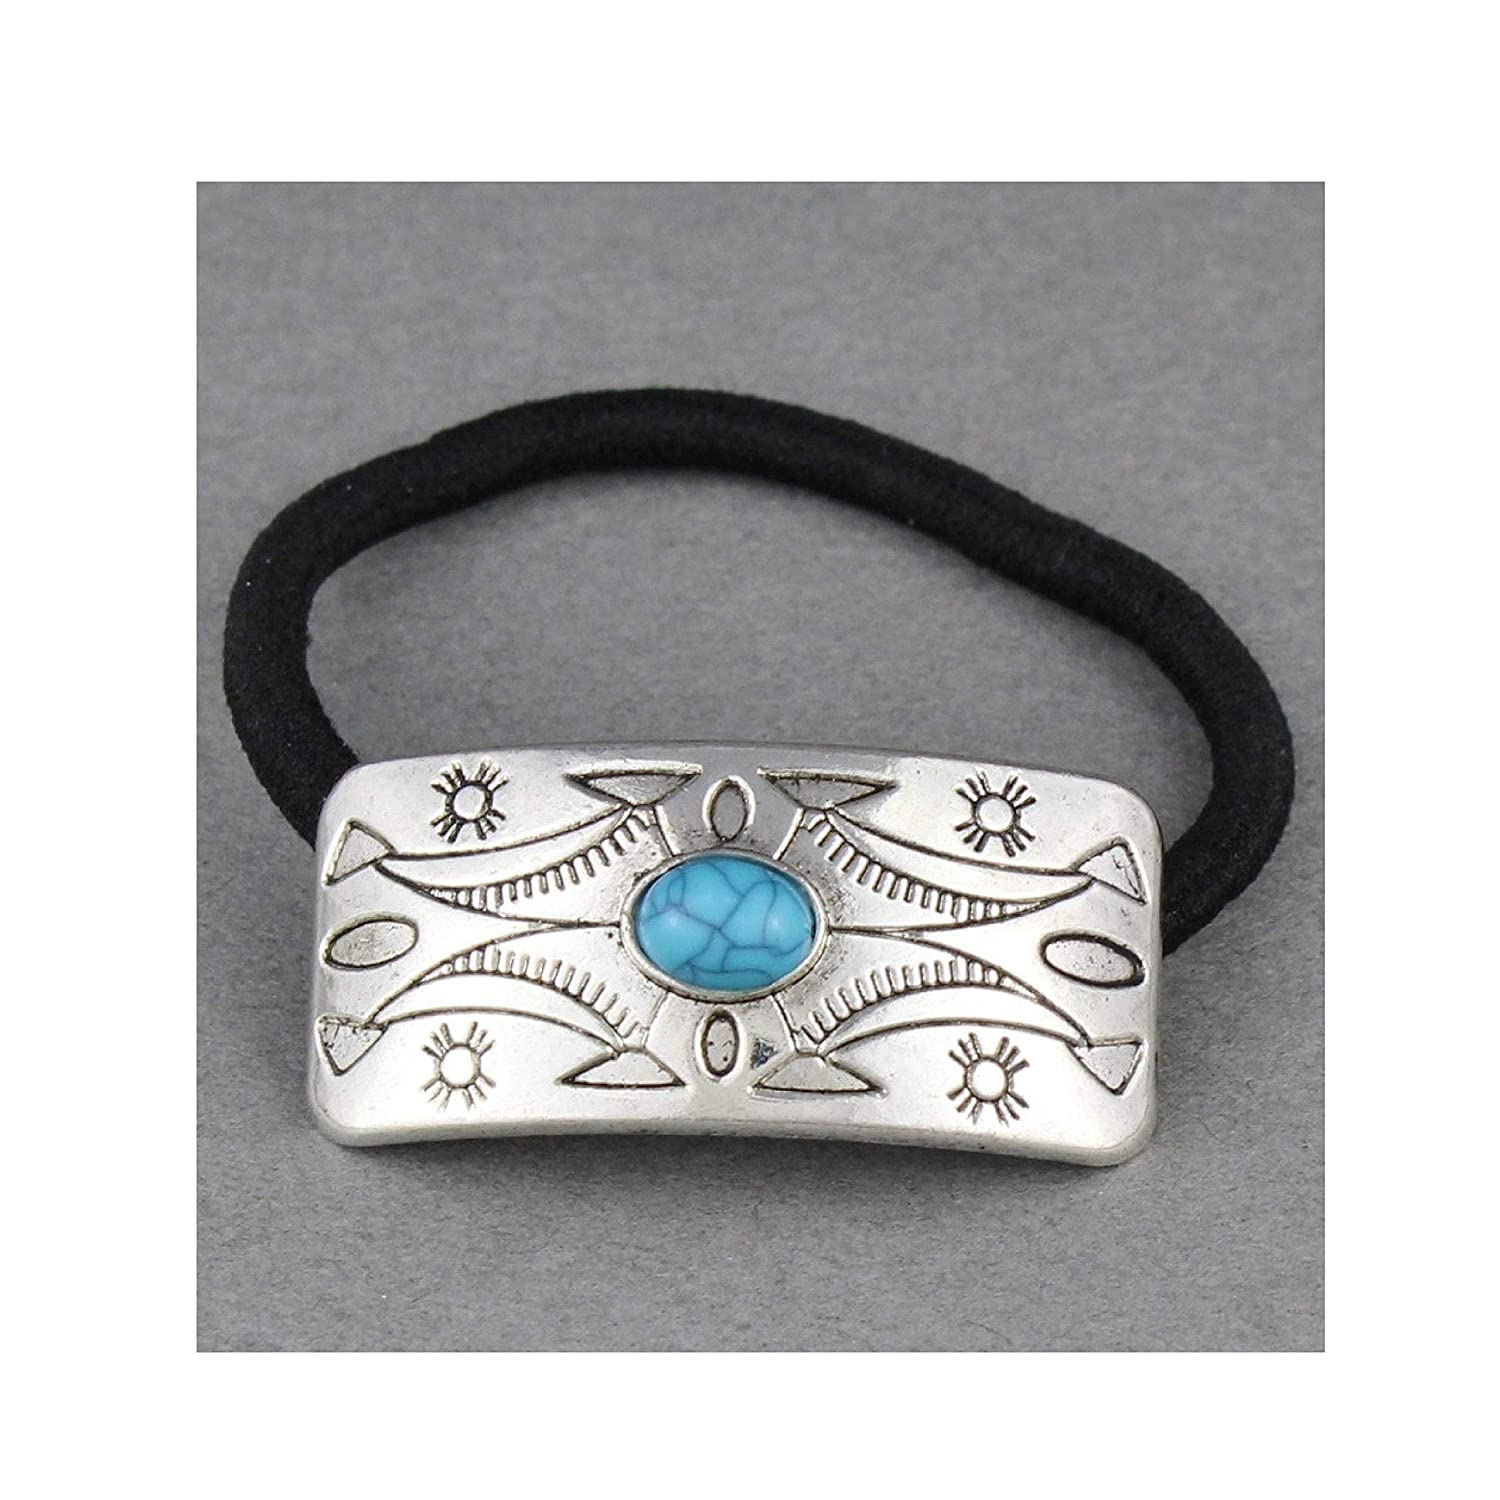 Silver turquoise metal cuff genie style ponytail holder stretch pony tail cover